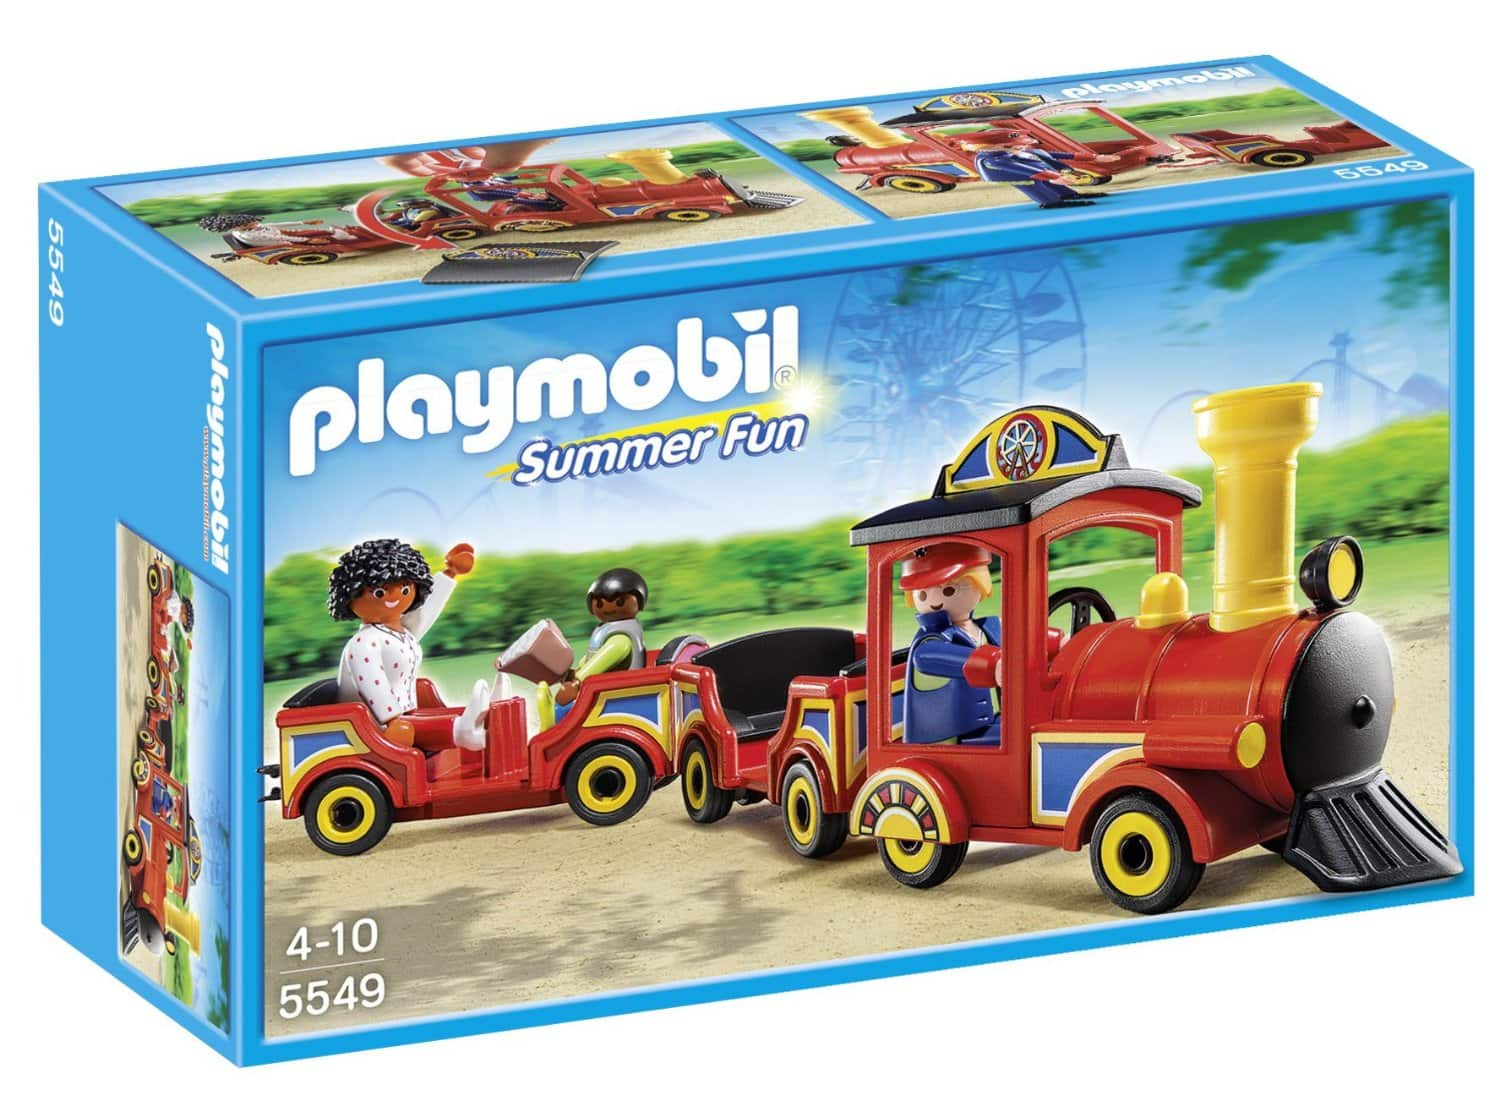 PLAYMOBIL Summer Fun Children's Train Set @ Amazon $8.99